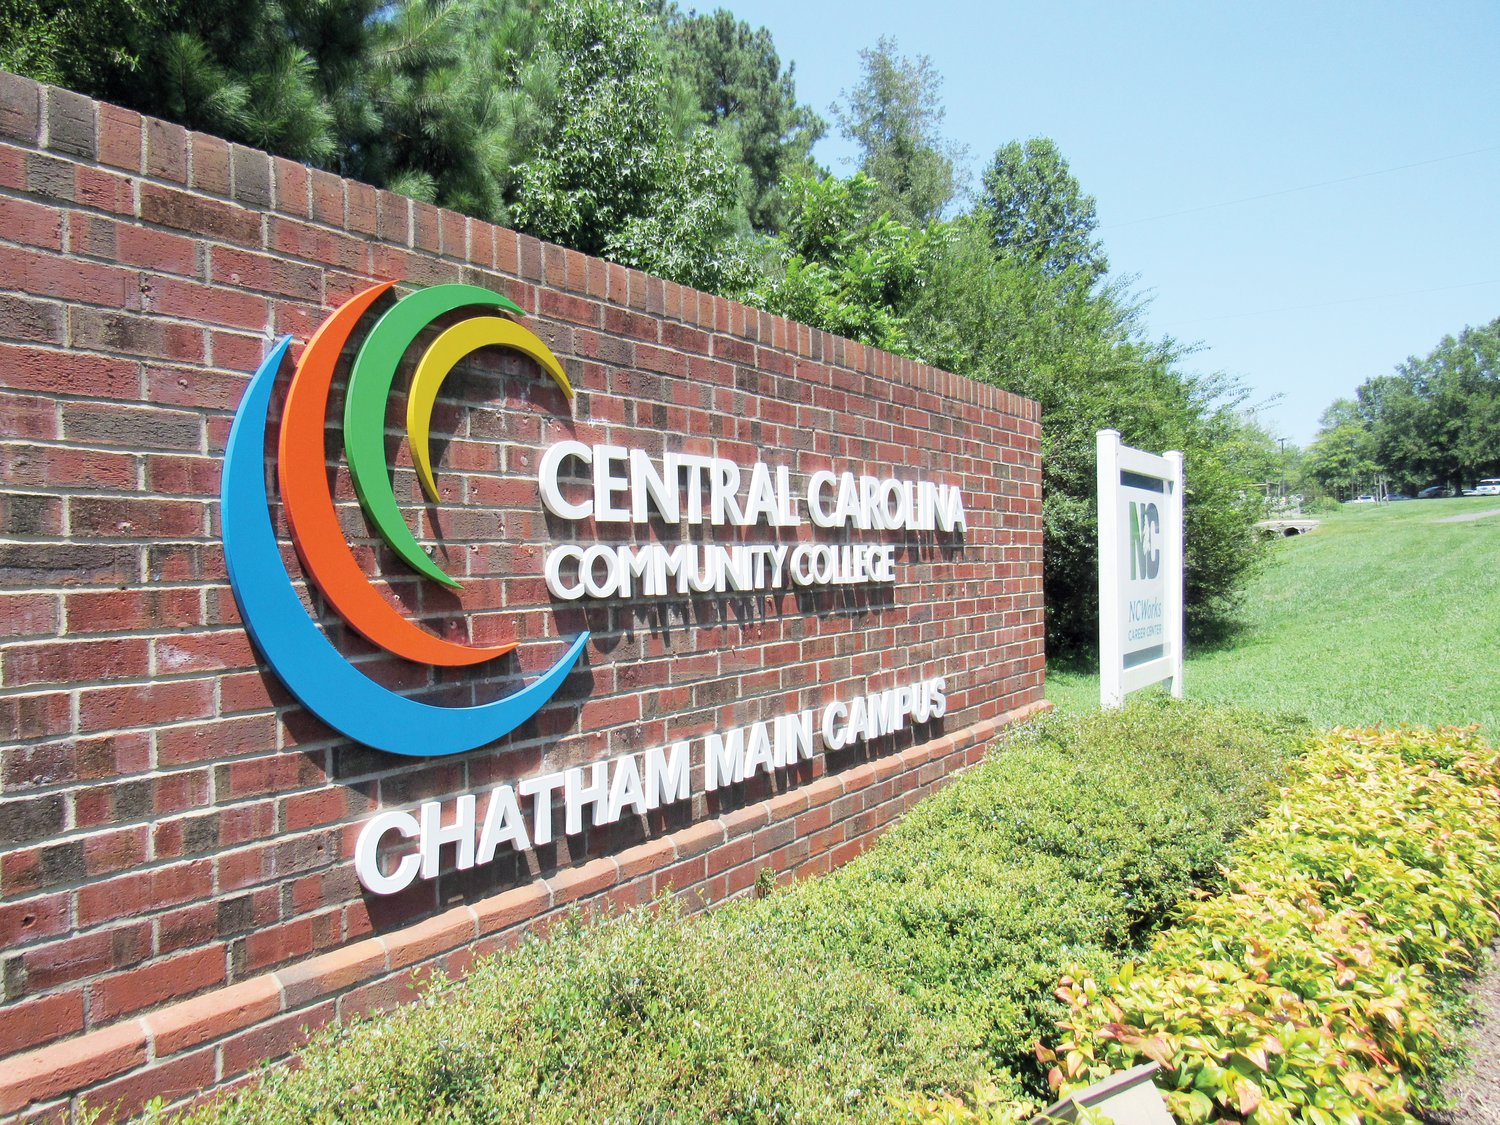 Central Carolina Community College's influence in Chatham County has been growing in recent years, as has the county government's investment in the college's operations and facilities.